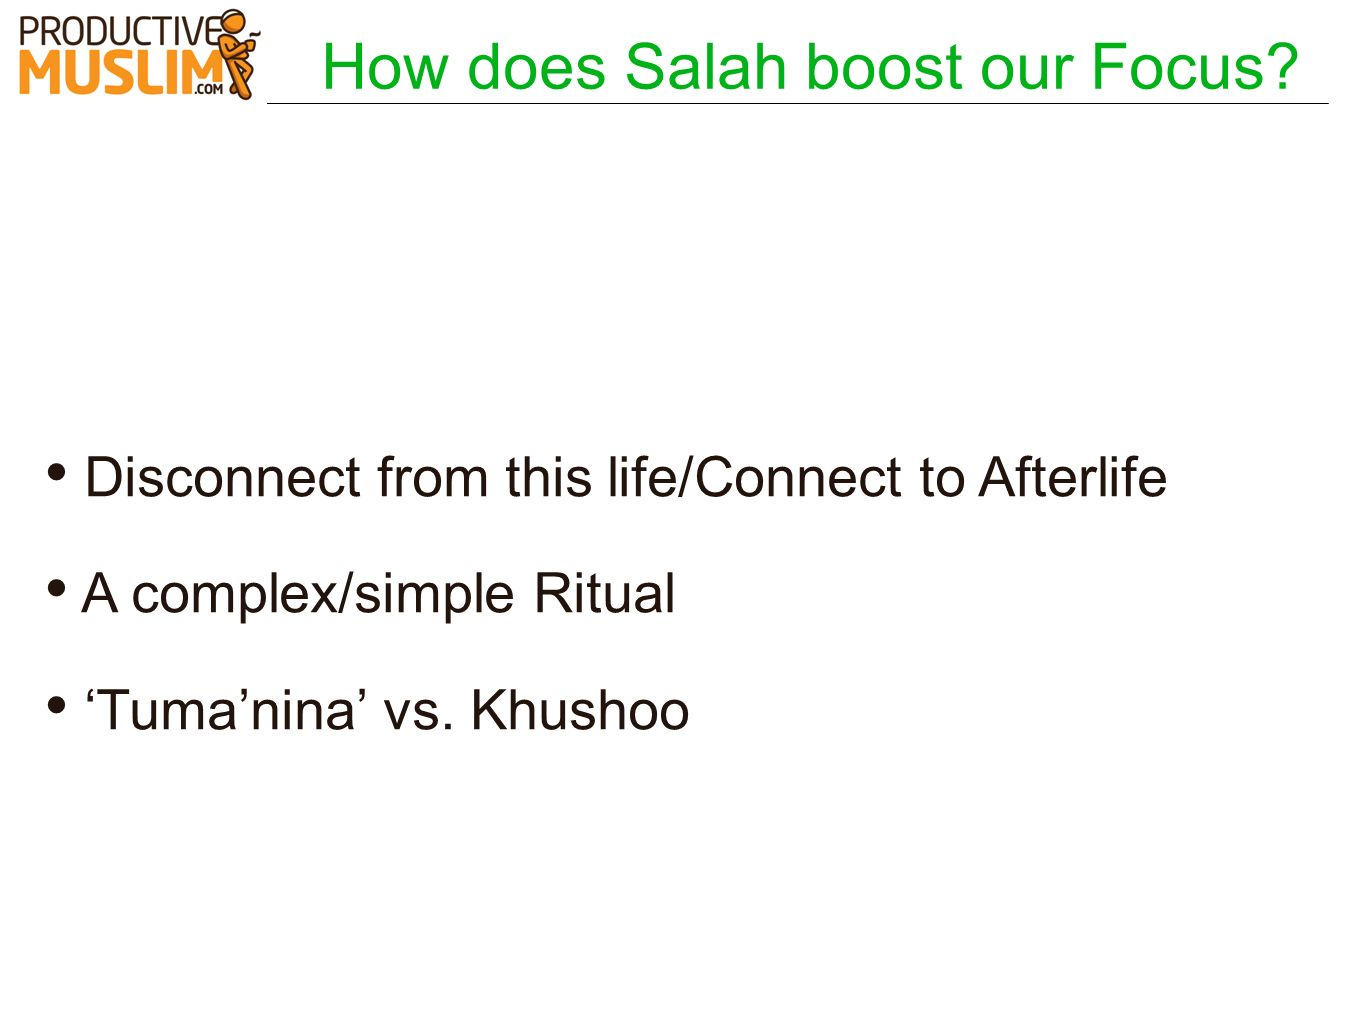 How does Salah boost our Focus? Disconnect from this life/Connect to Afterlife A complex/simple Ritual Tumanina vs. Khushoo